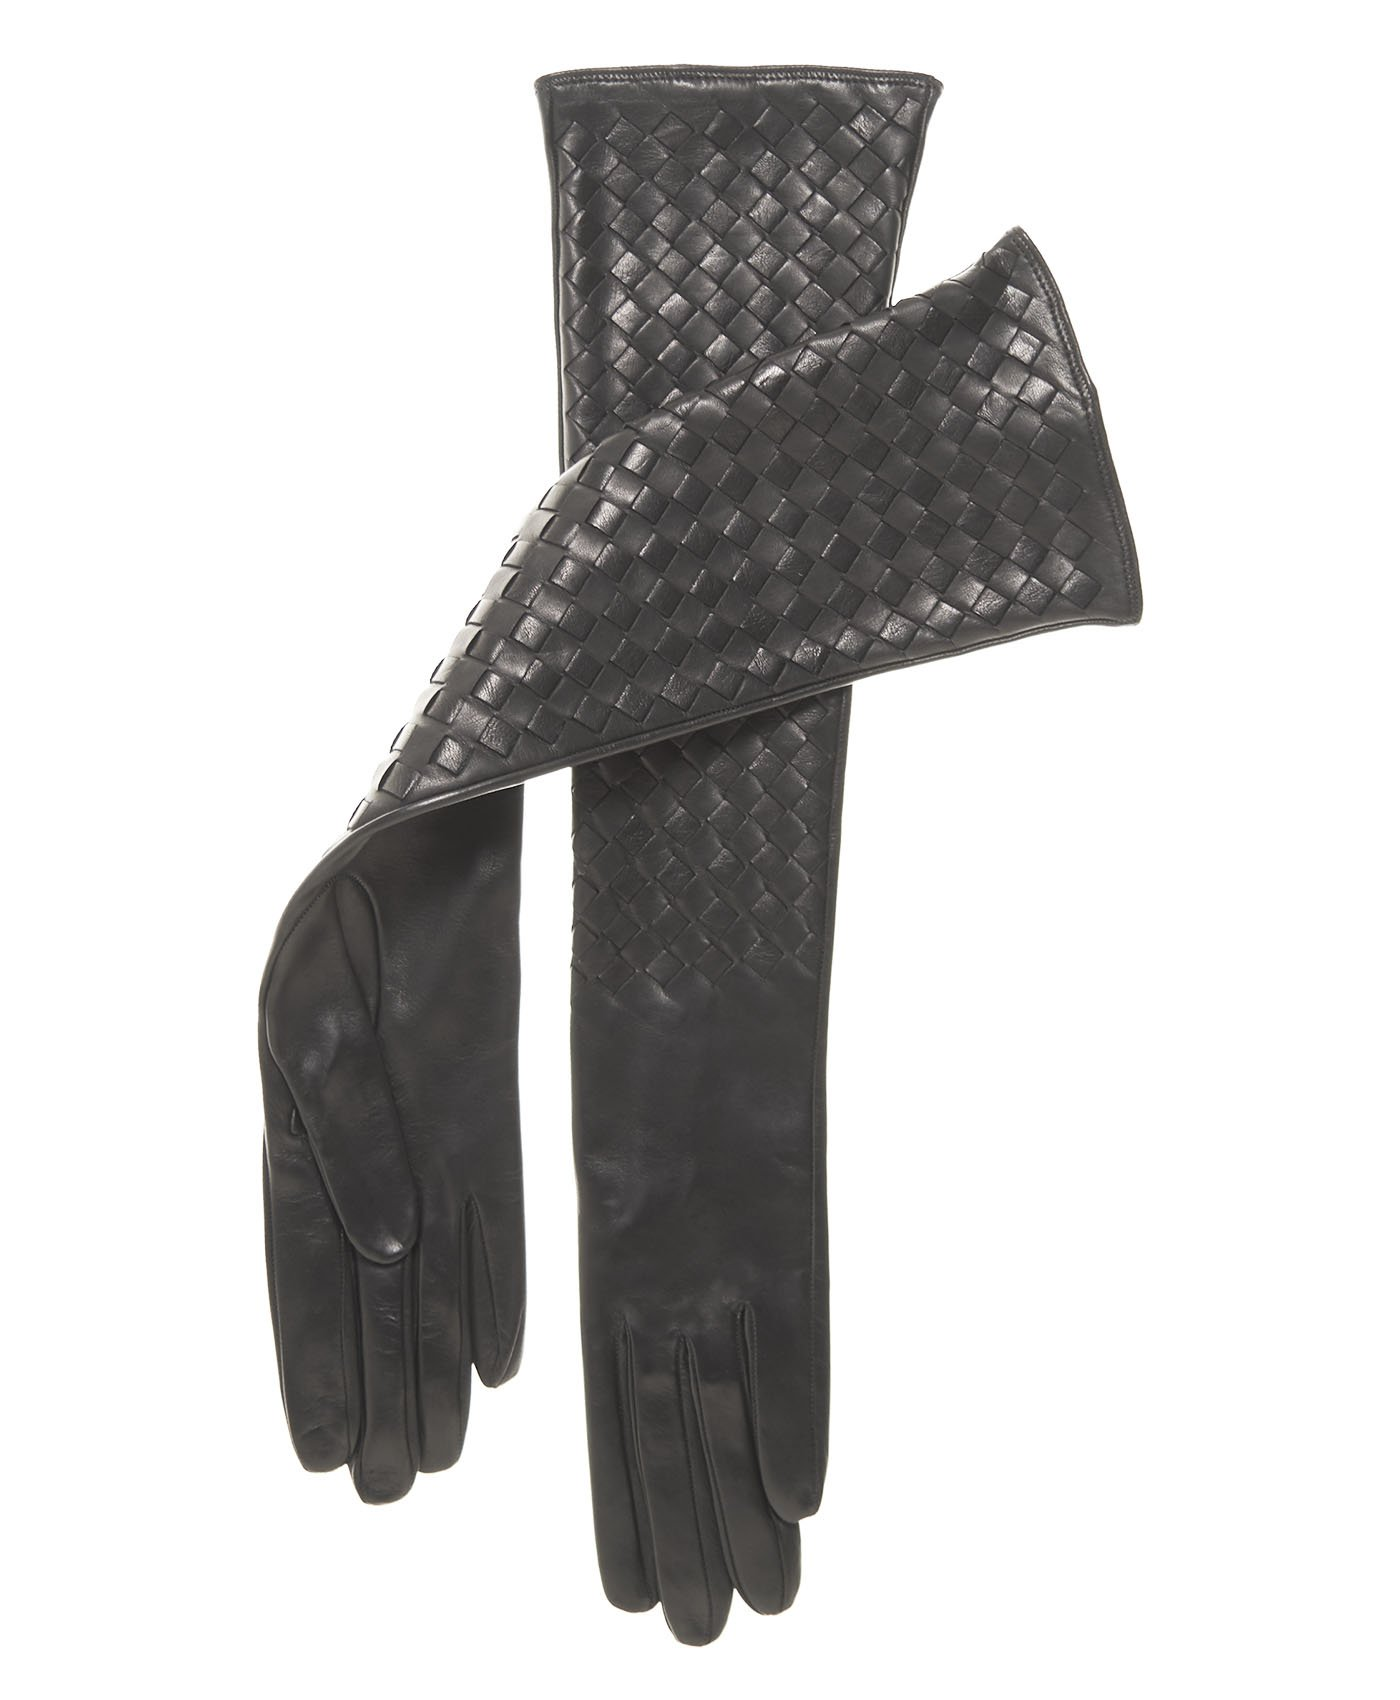 Fratelli Orsini Italian Long Woven Black Leather Gloves - 10-Button Length Size 7 Color Black by Fratelli Orsini